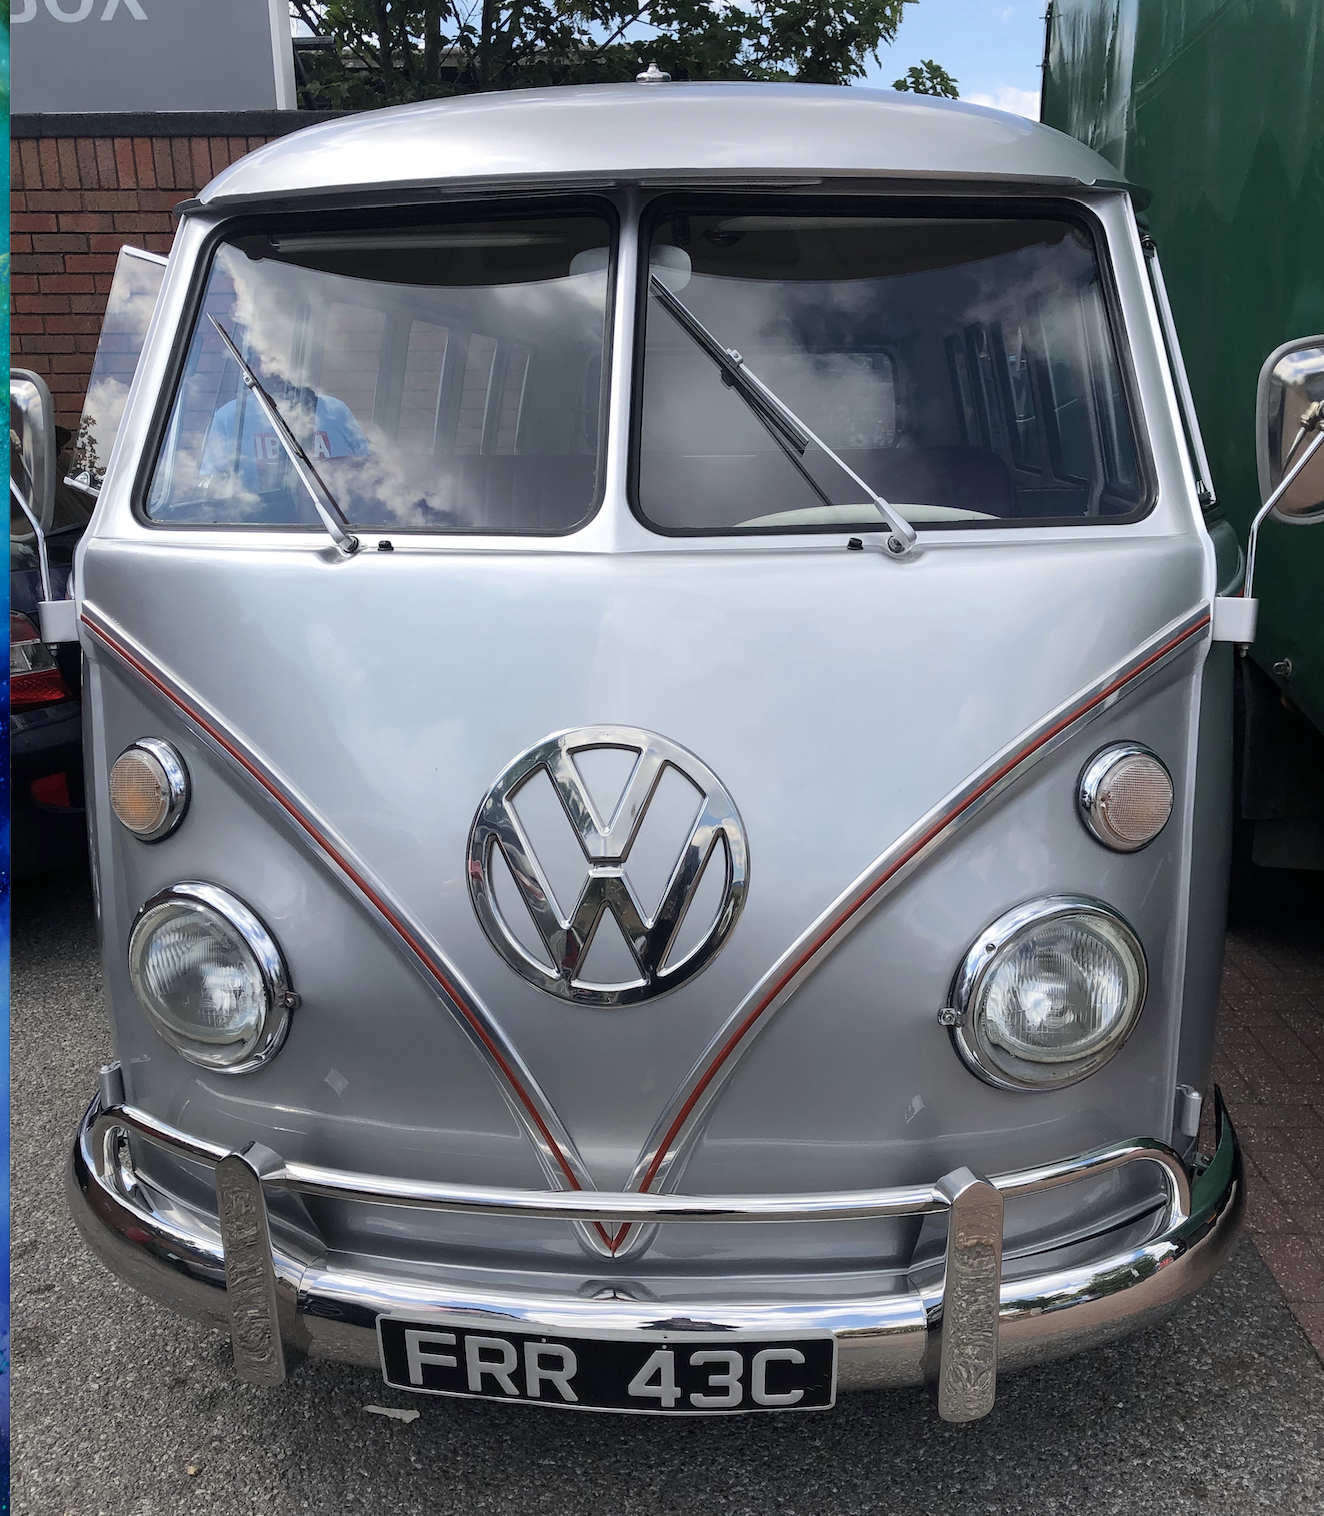 VW Silver Split Screen Campervan Hearse at Feltham Branch